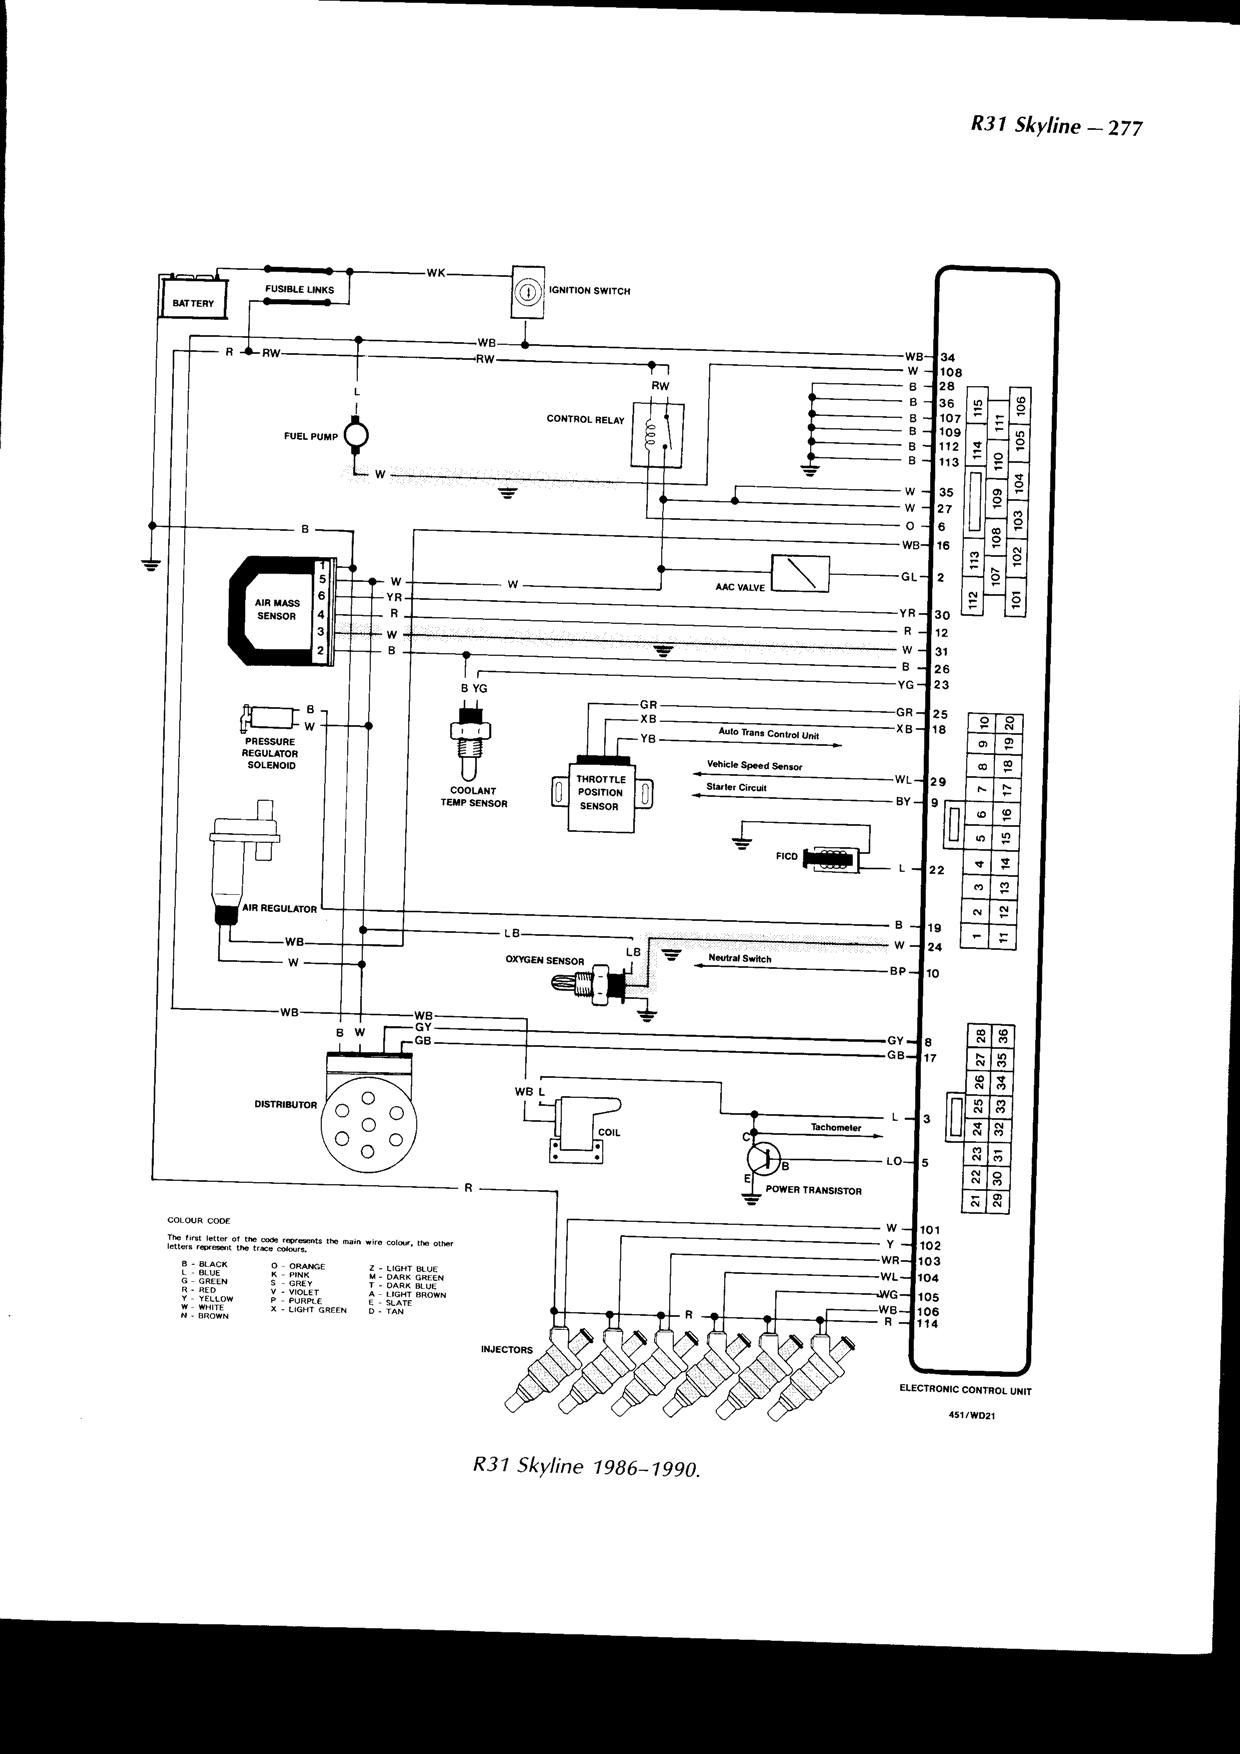 2000 Chrysler 300m Engine Diagram Nissan 1400 Electrical Wiring Diagram Of 2000 Chrysler 300m Engine Diagram